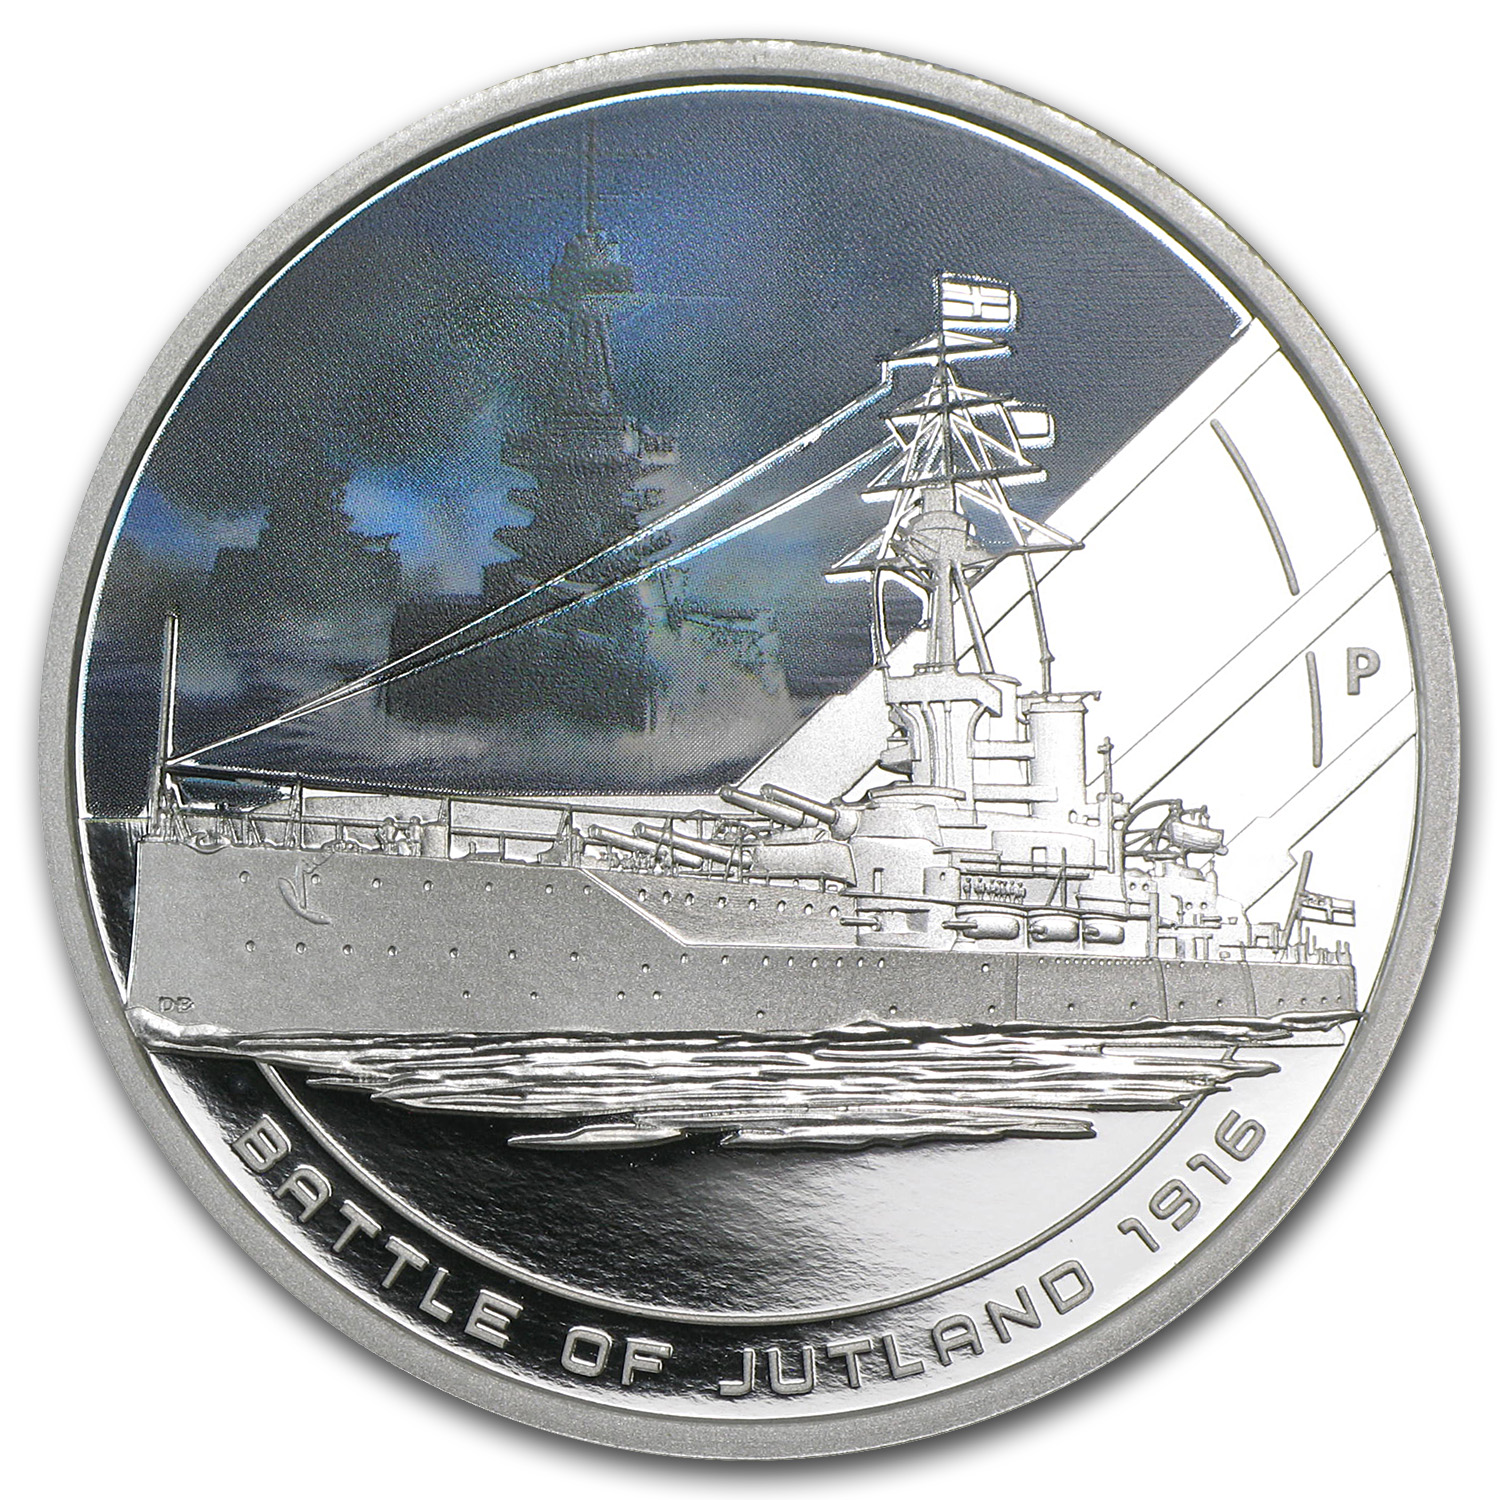 2011 Cook Islands 1 oz Silver Battle of Jutland Proof